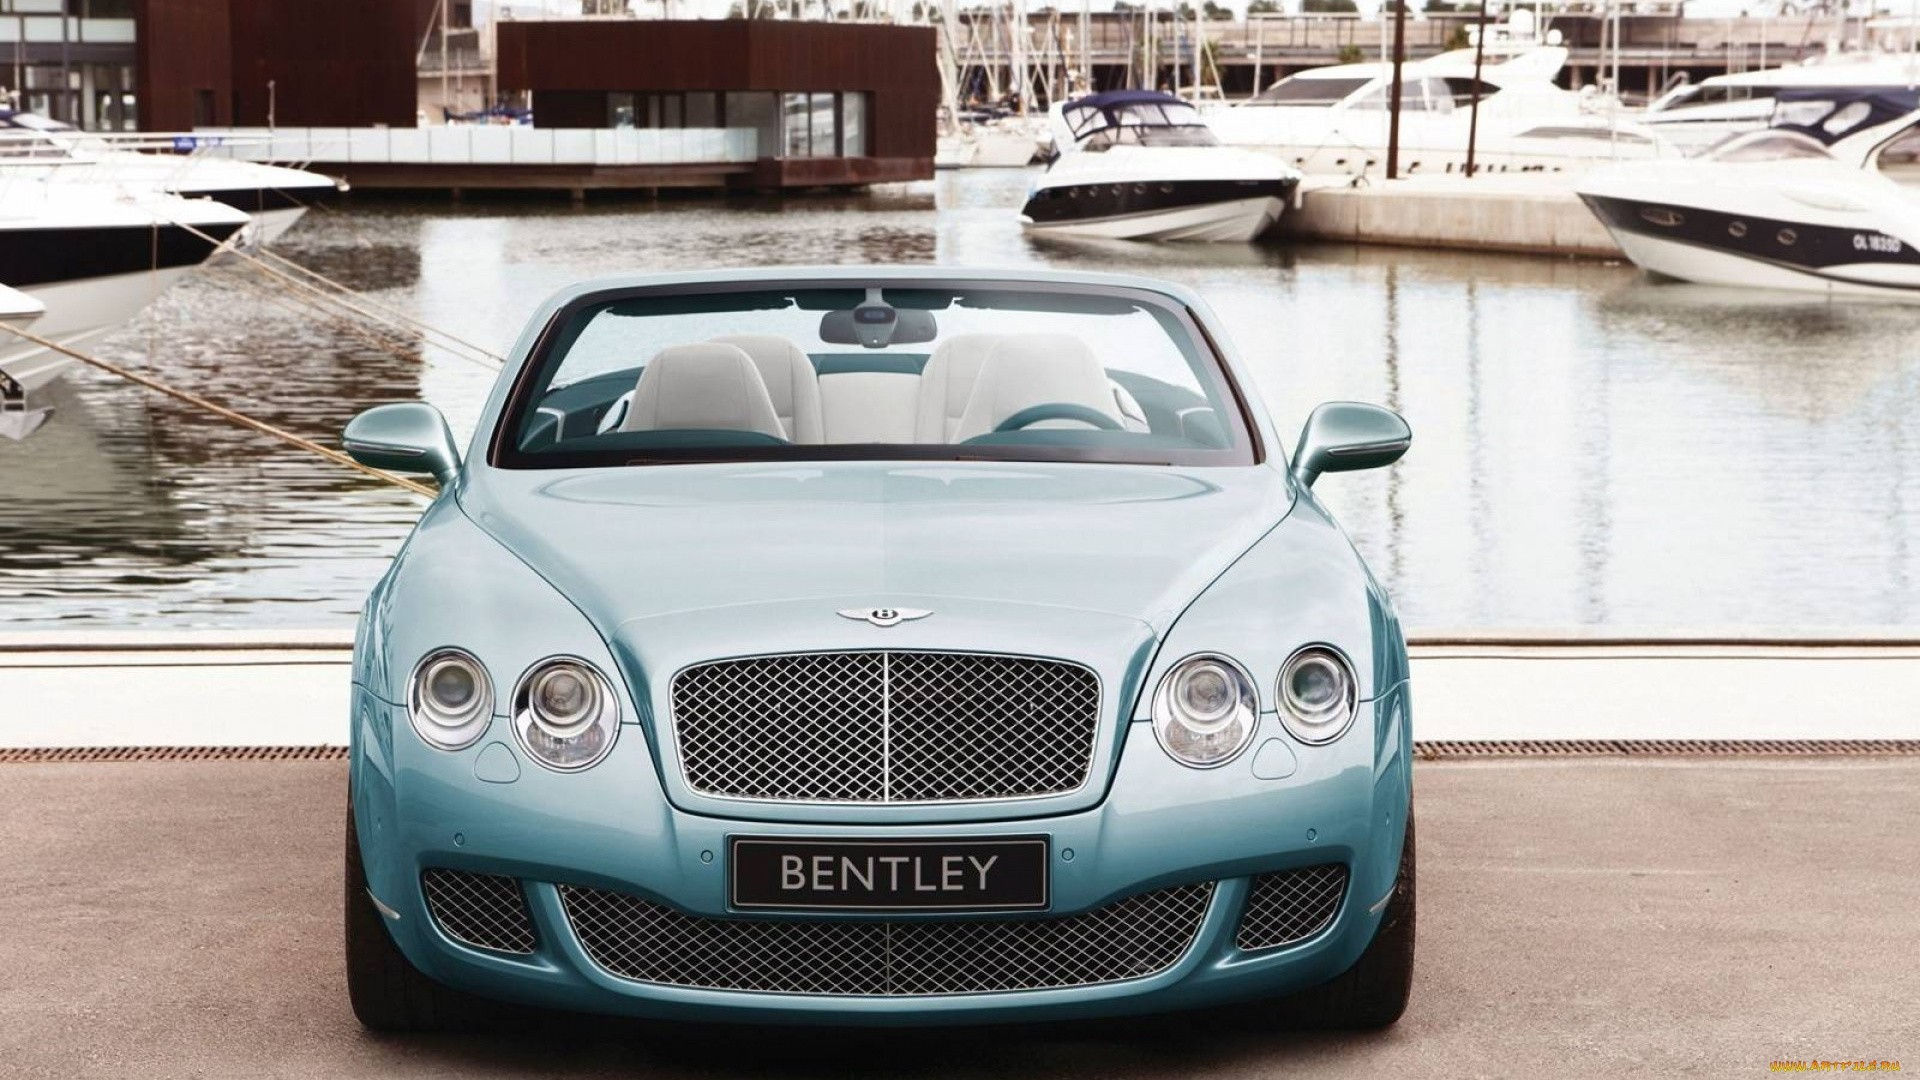 Bentley Wallpaper Pic